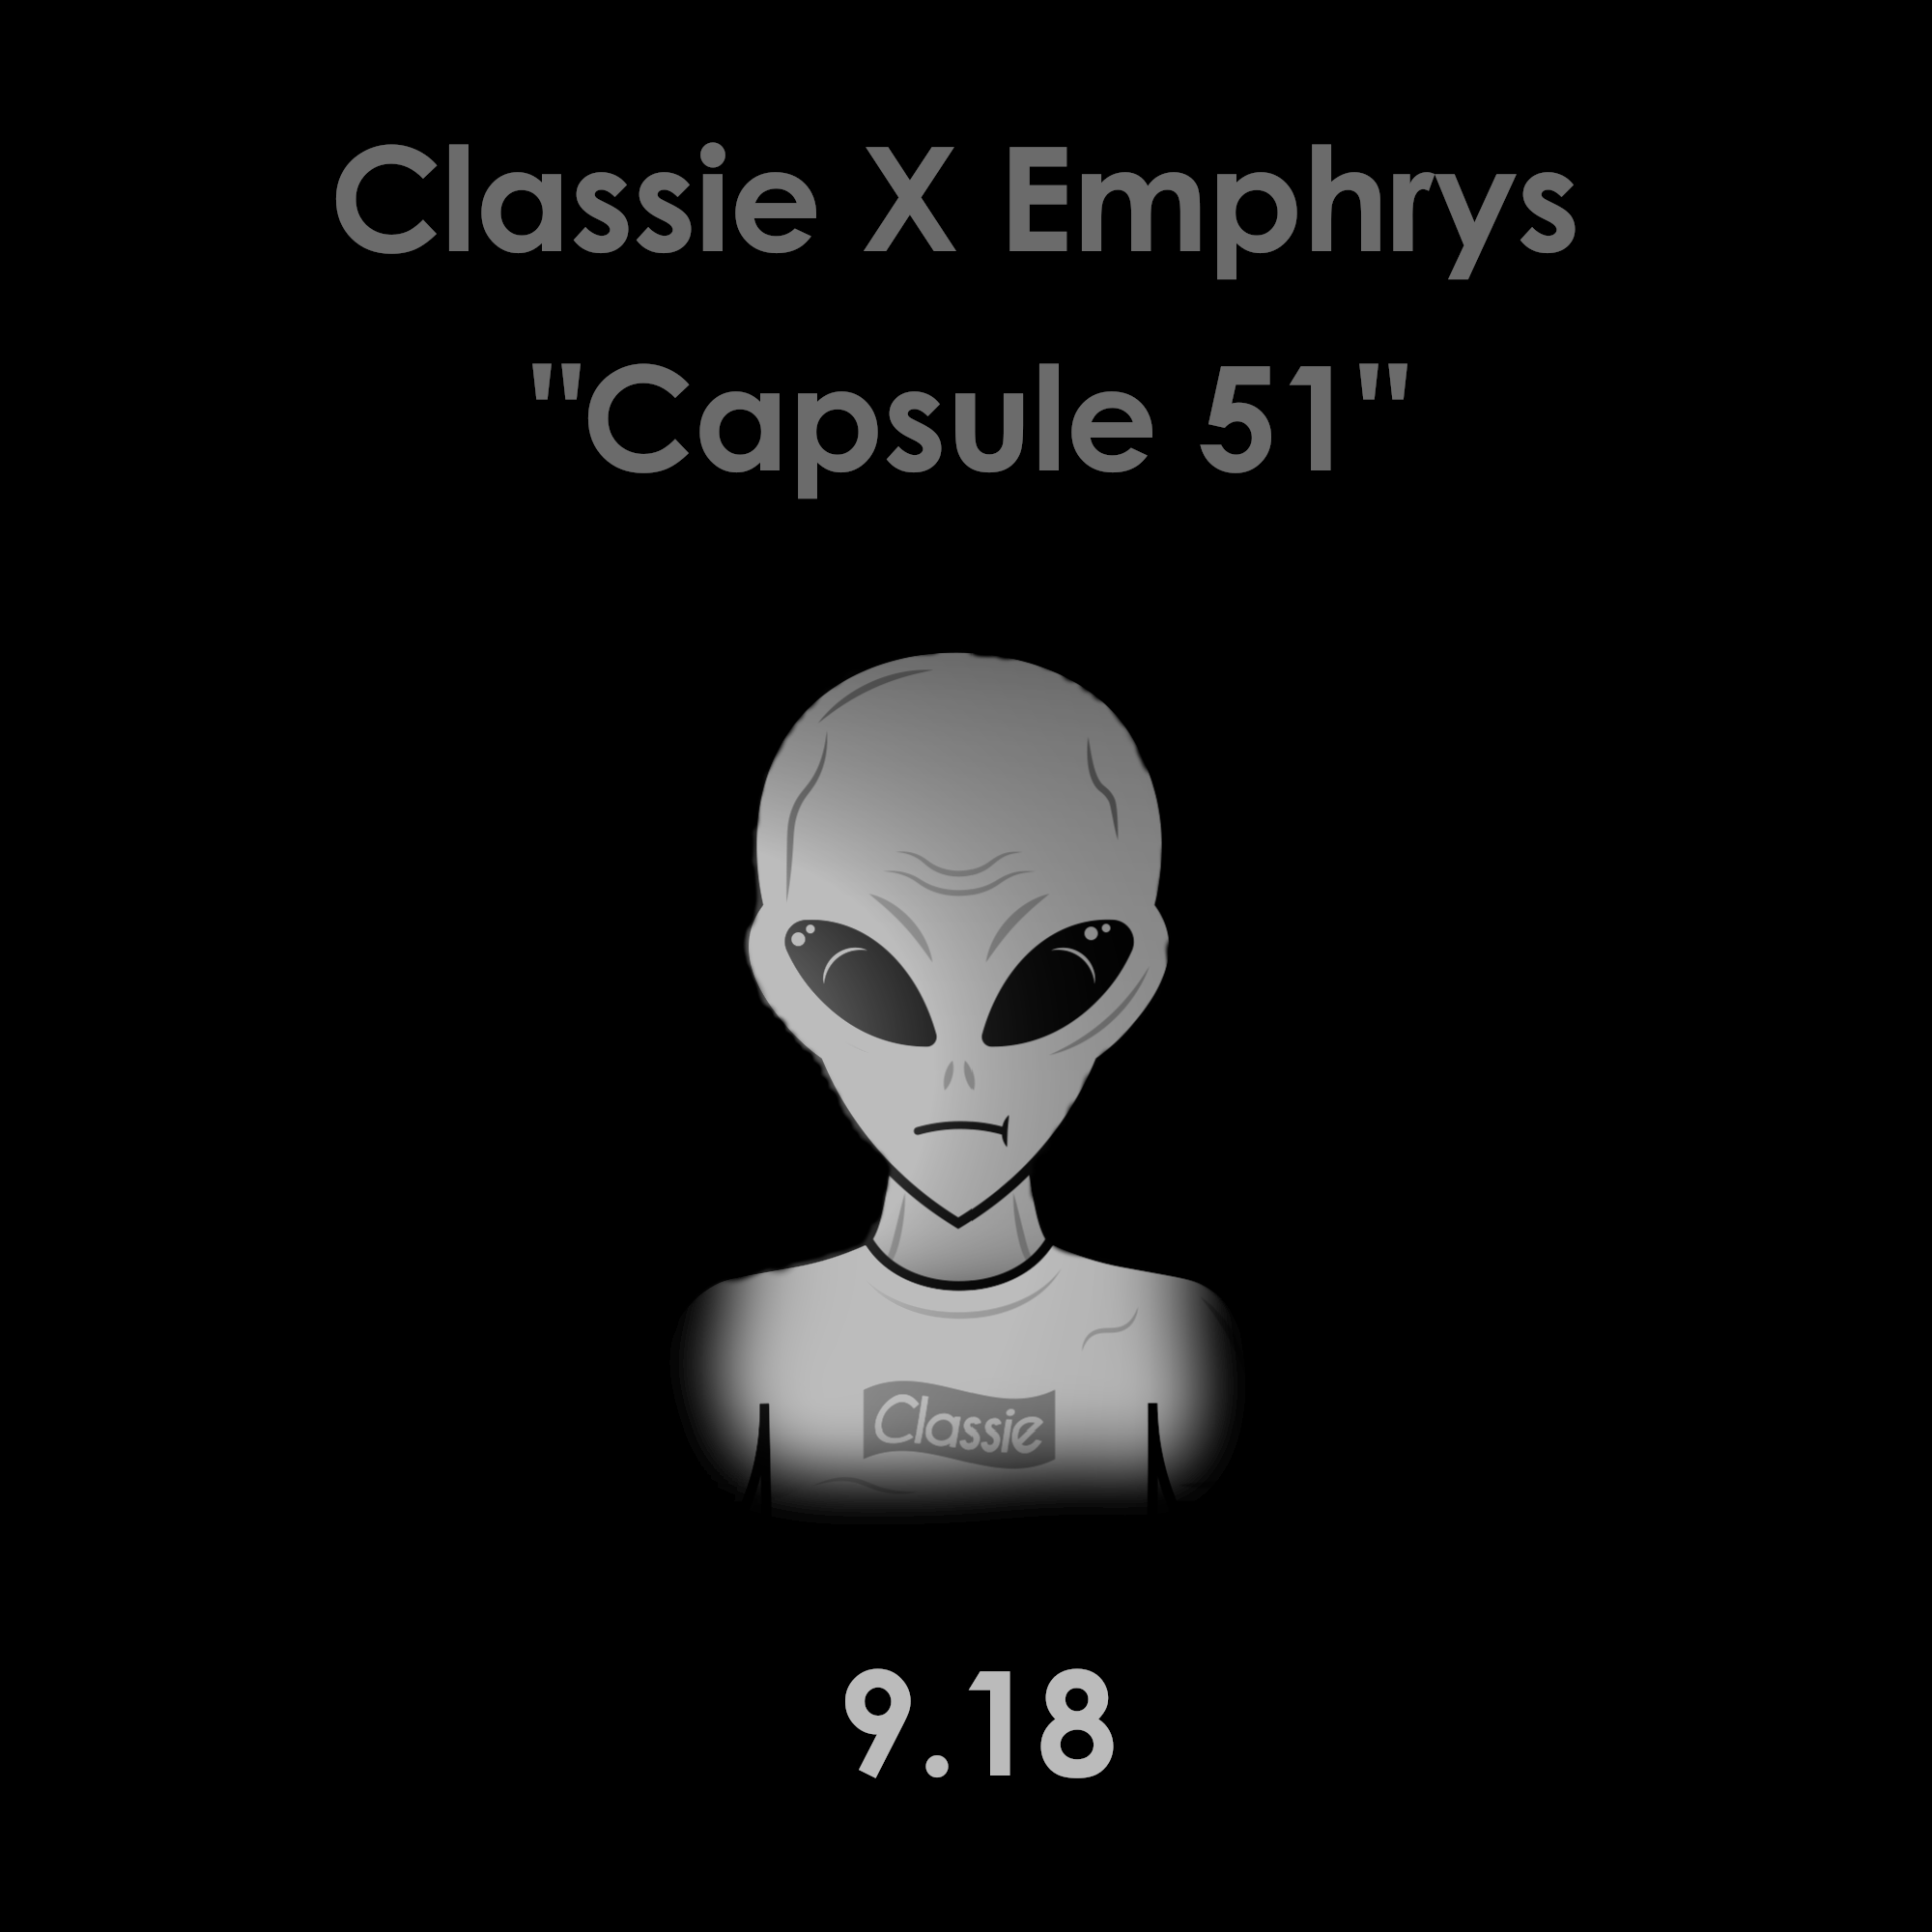 Release 02: Classie X Emphrys 'Capsule 51' Collection